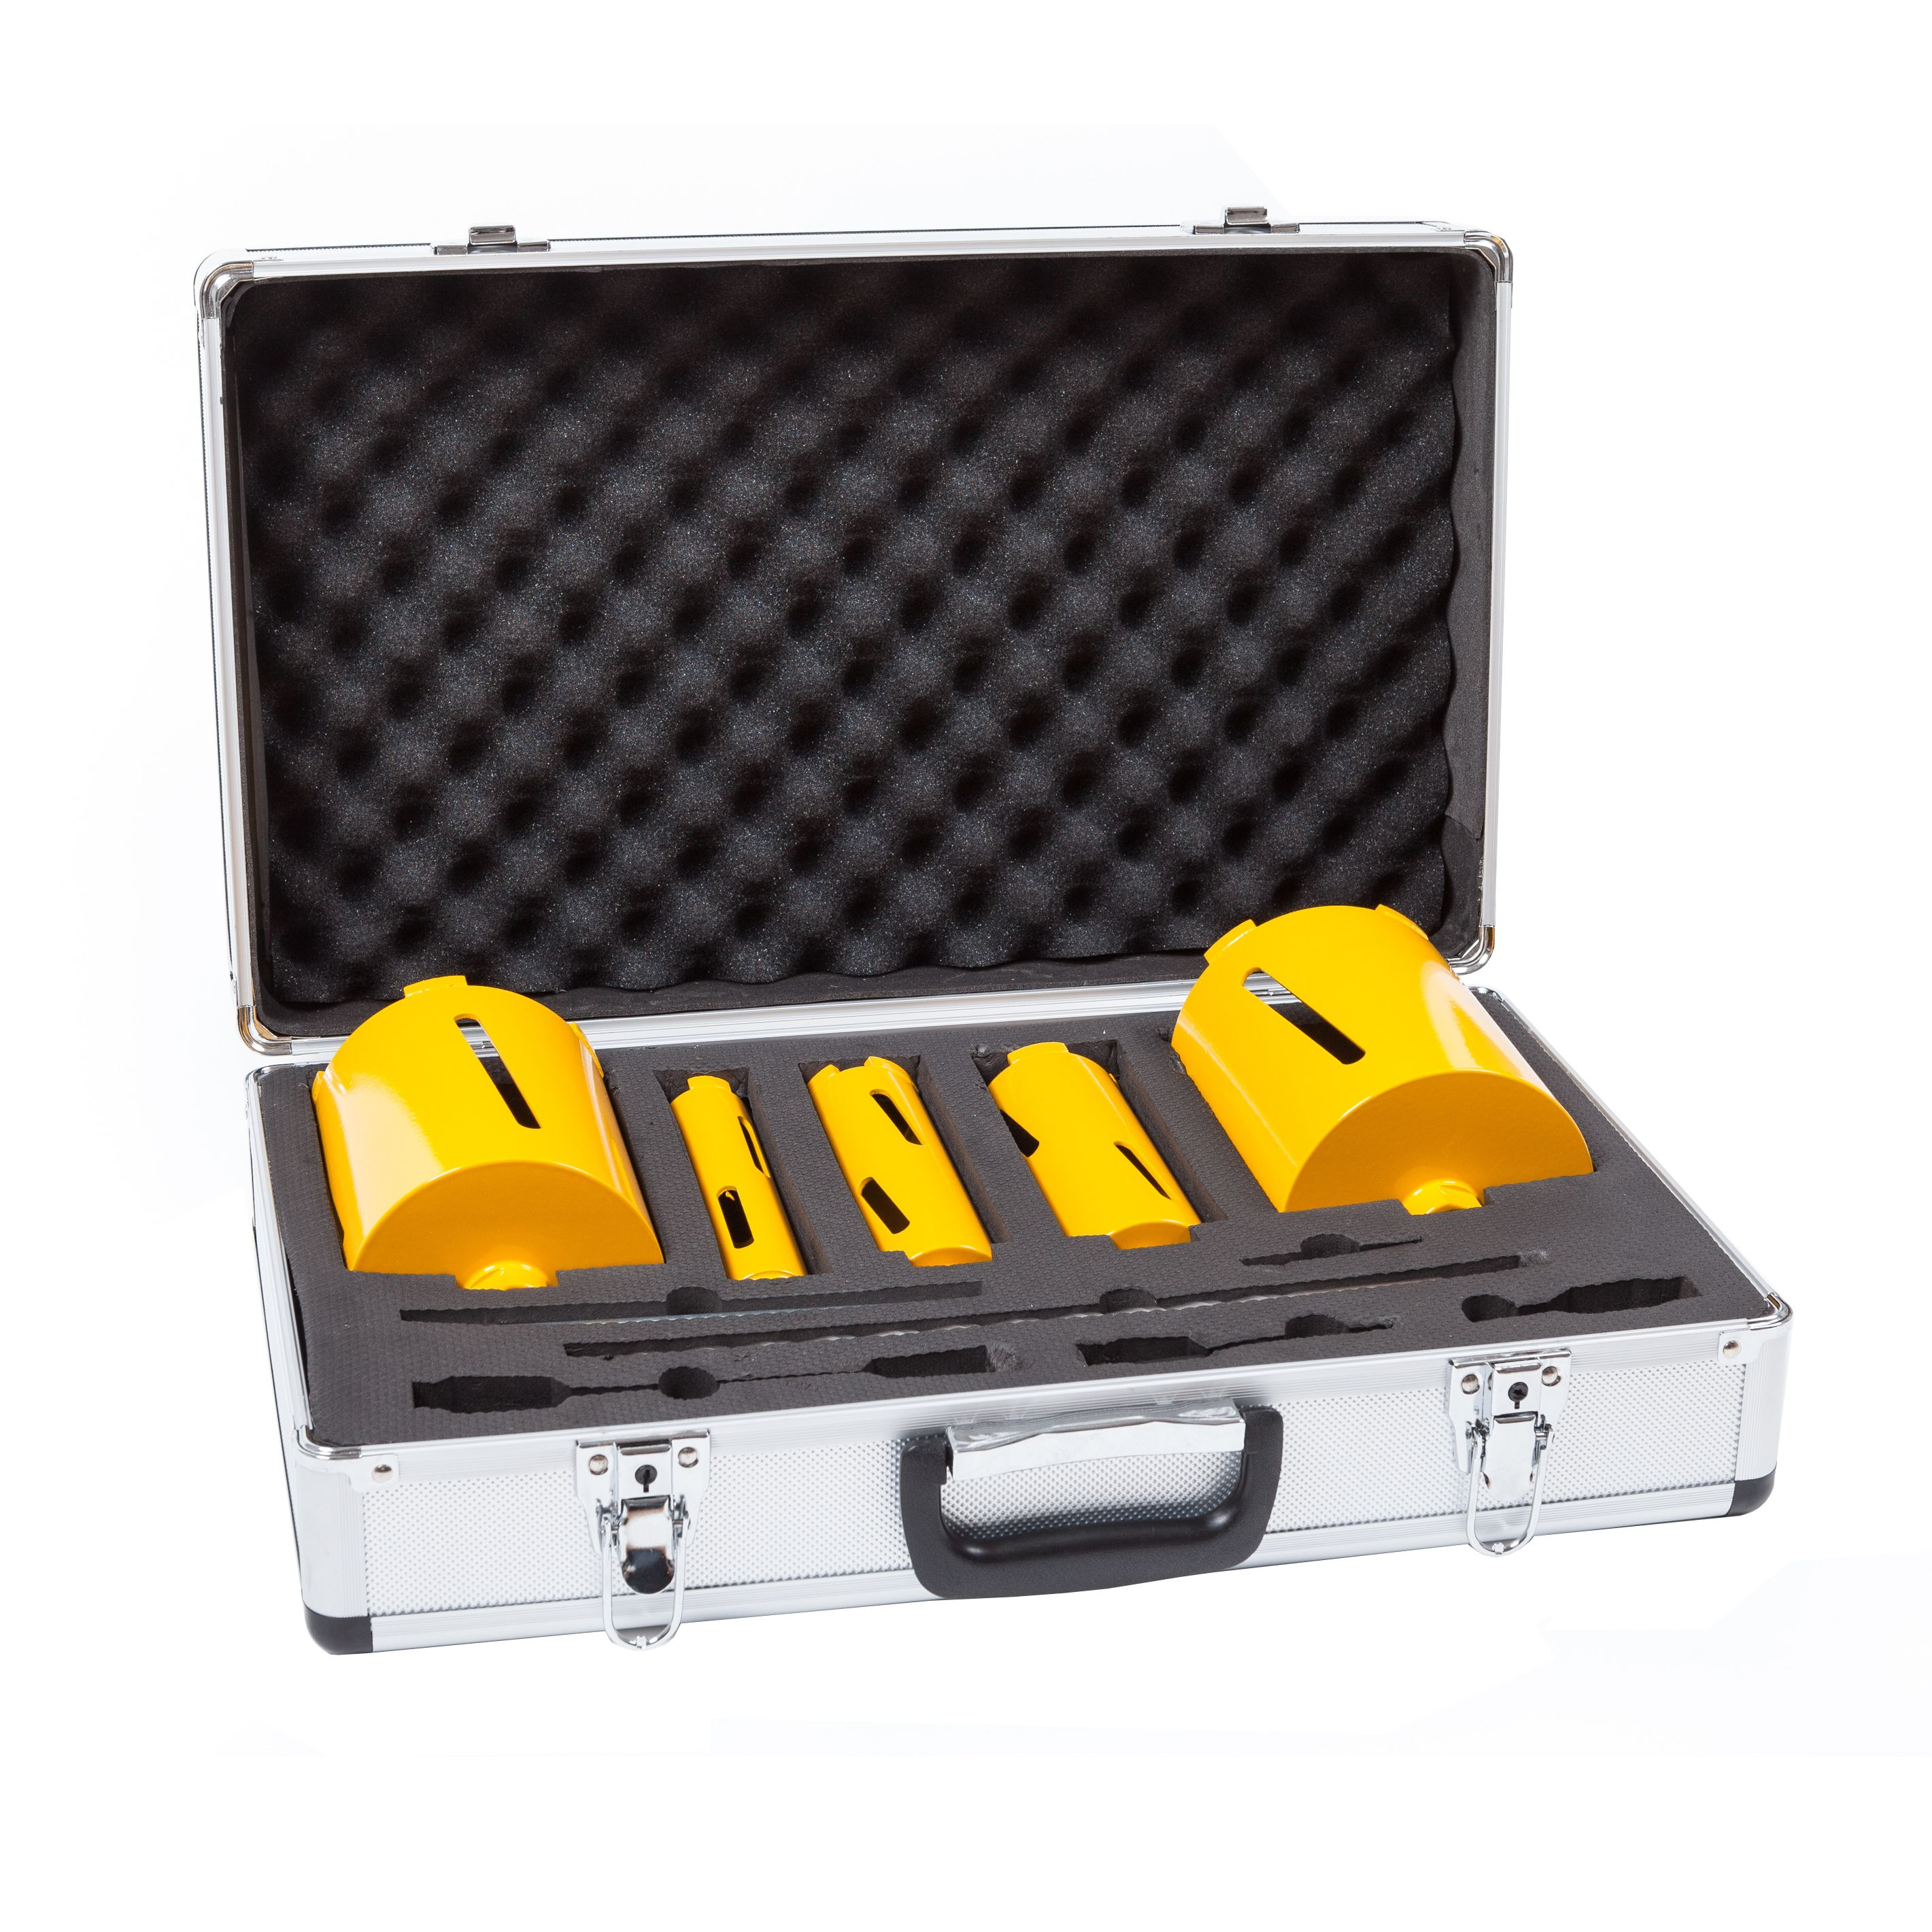 Jcb Core Drill Set, 11 Piece Of 11